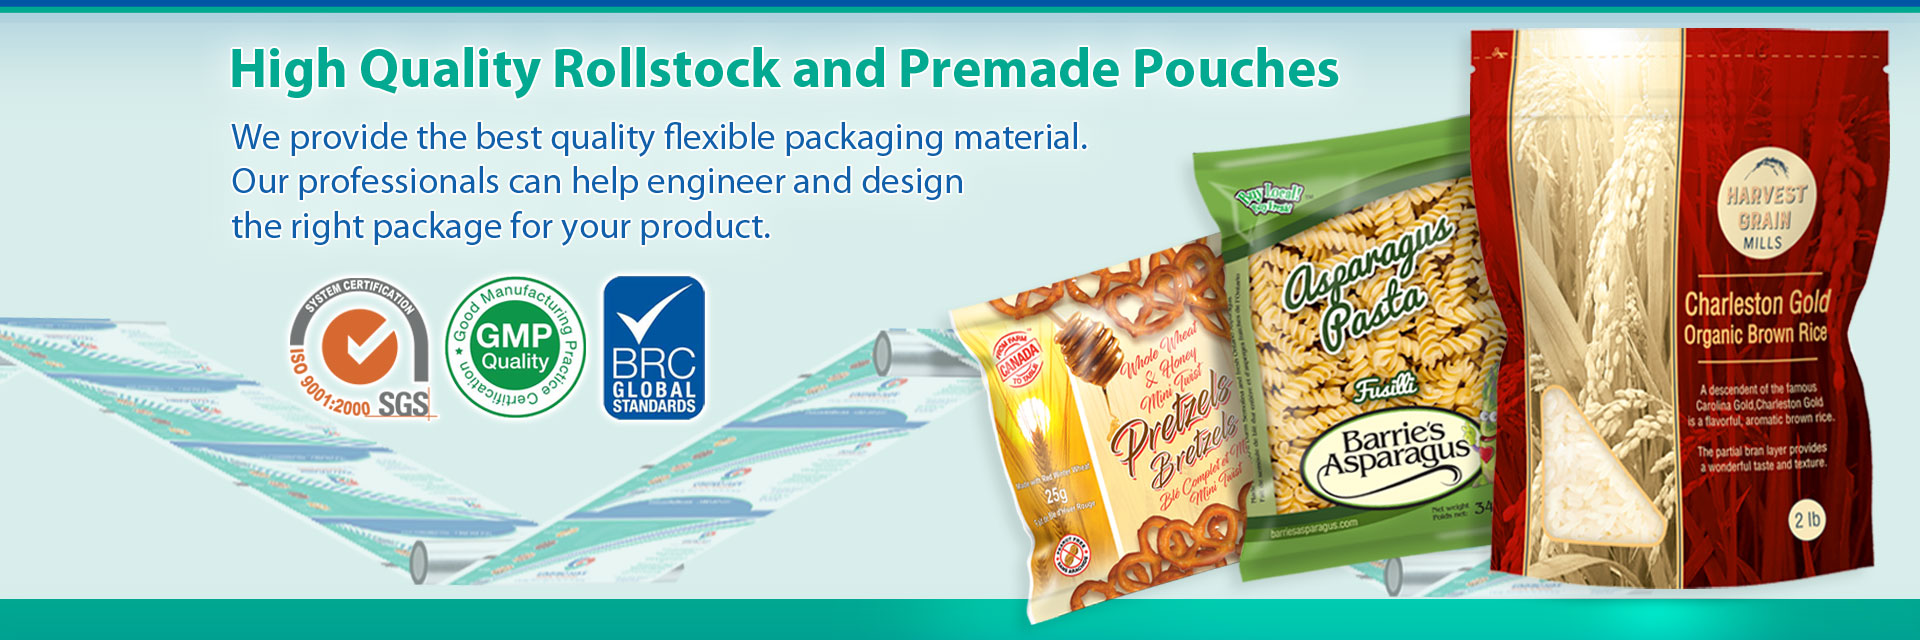 Premade Pouch And Rollstock Film Packages